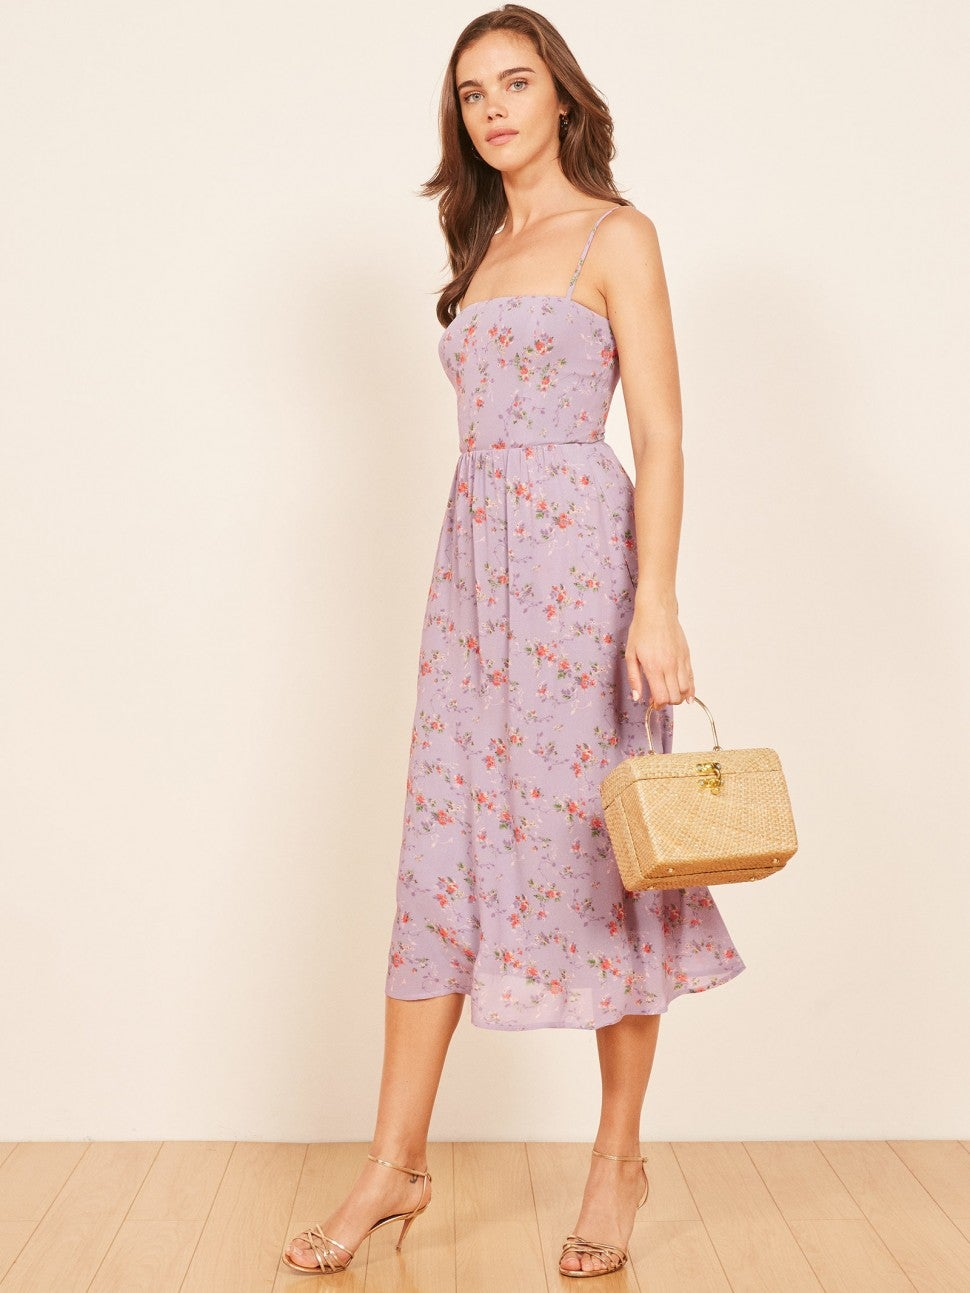 Reformation purple floral flared dress